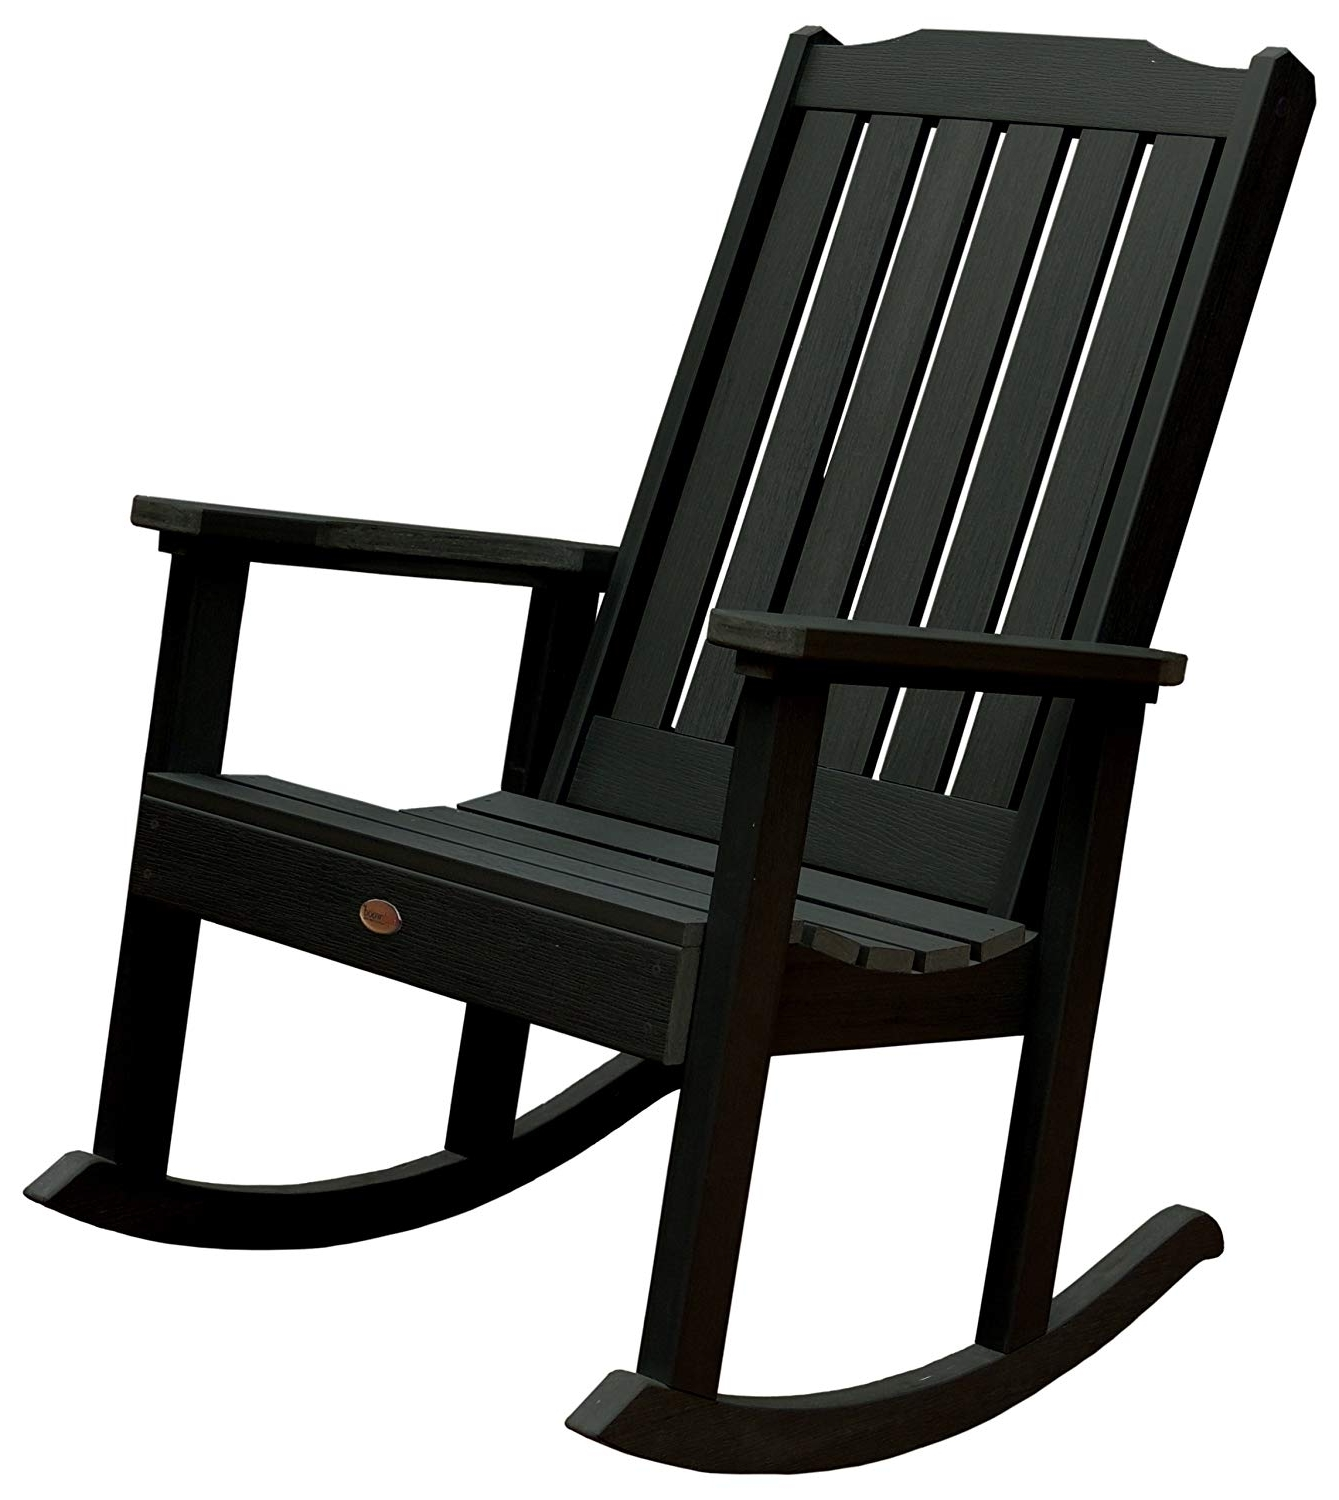 Outdoor Rocking Chairs Regarding Preferred Amazon : Highwood Lehigh Rocking Chair, Charleston Green : Patio (View 9 of 15)